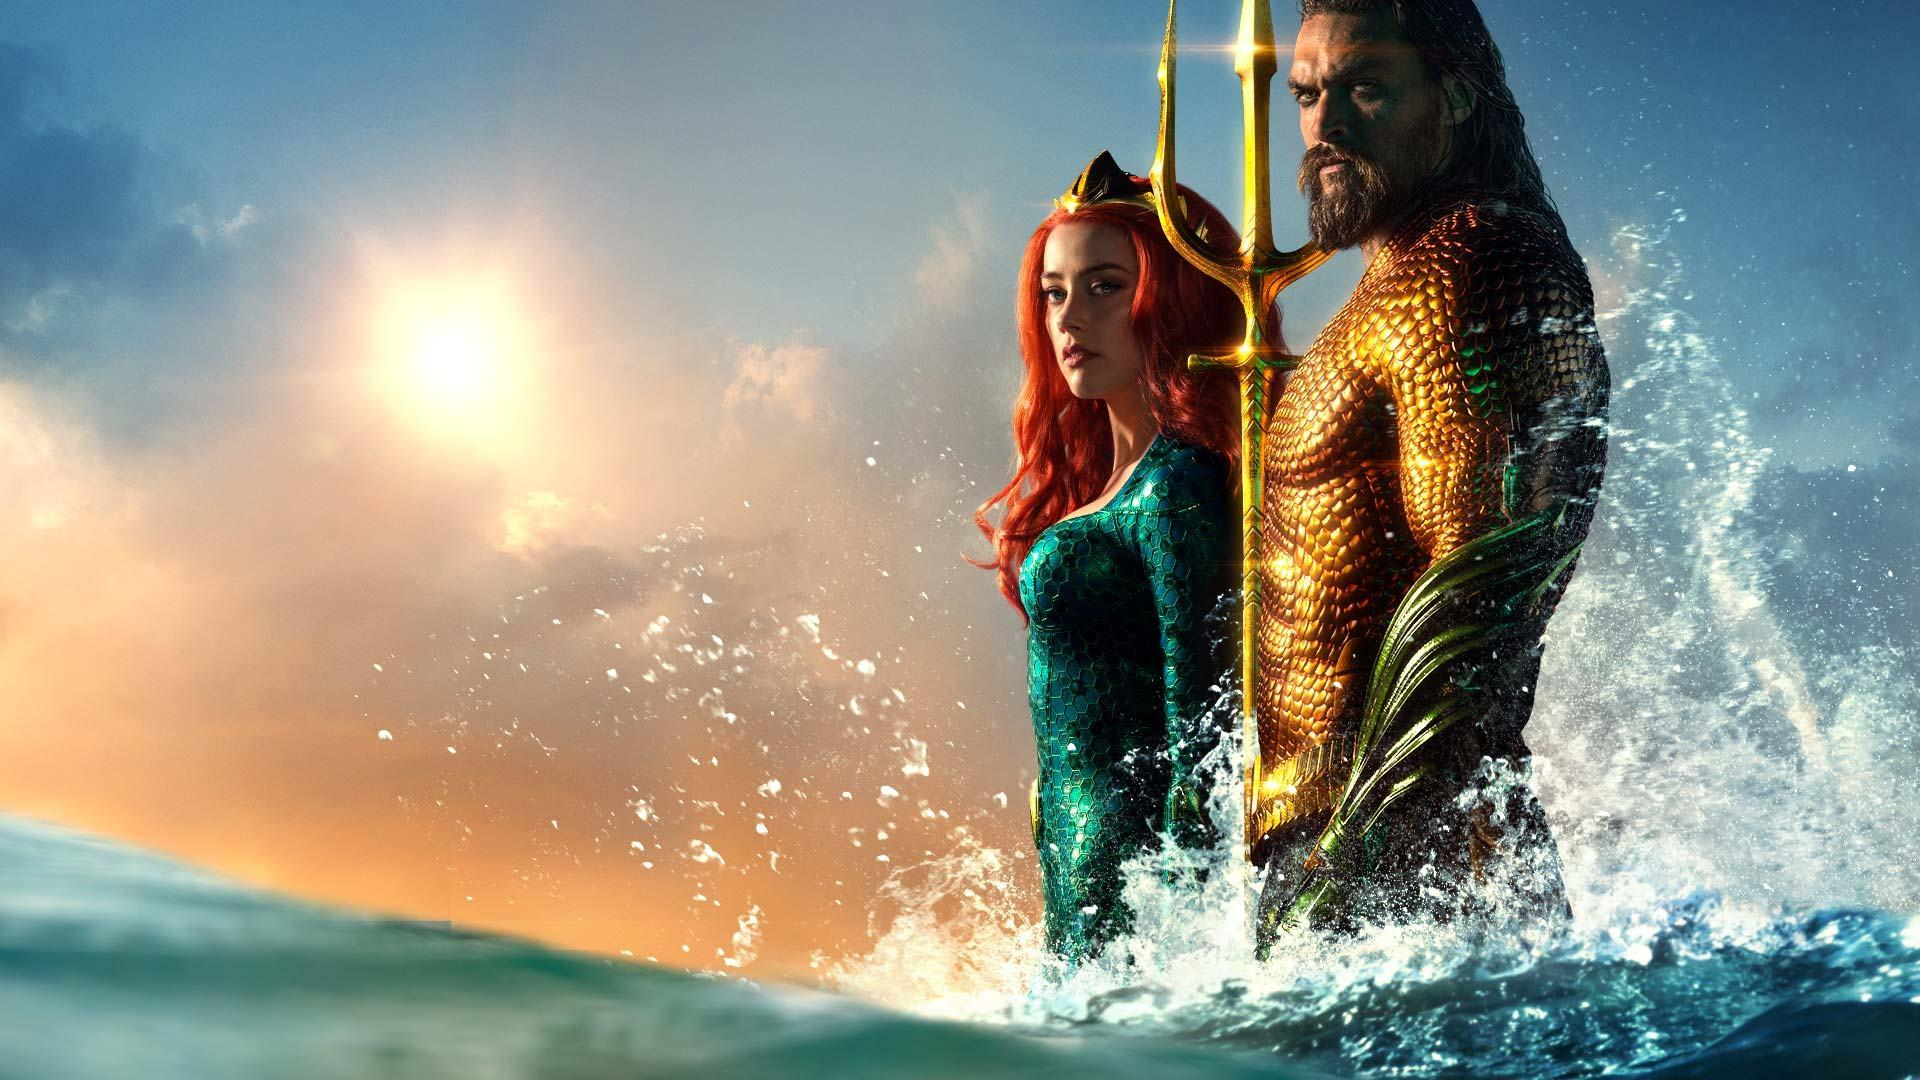 If you're an Amazon Prime member, you may get to see 'Aquaman' early ...